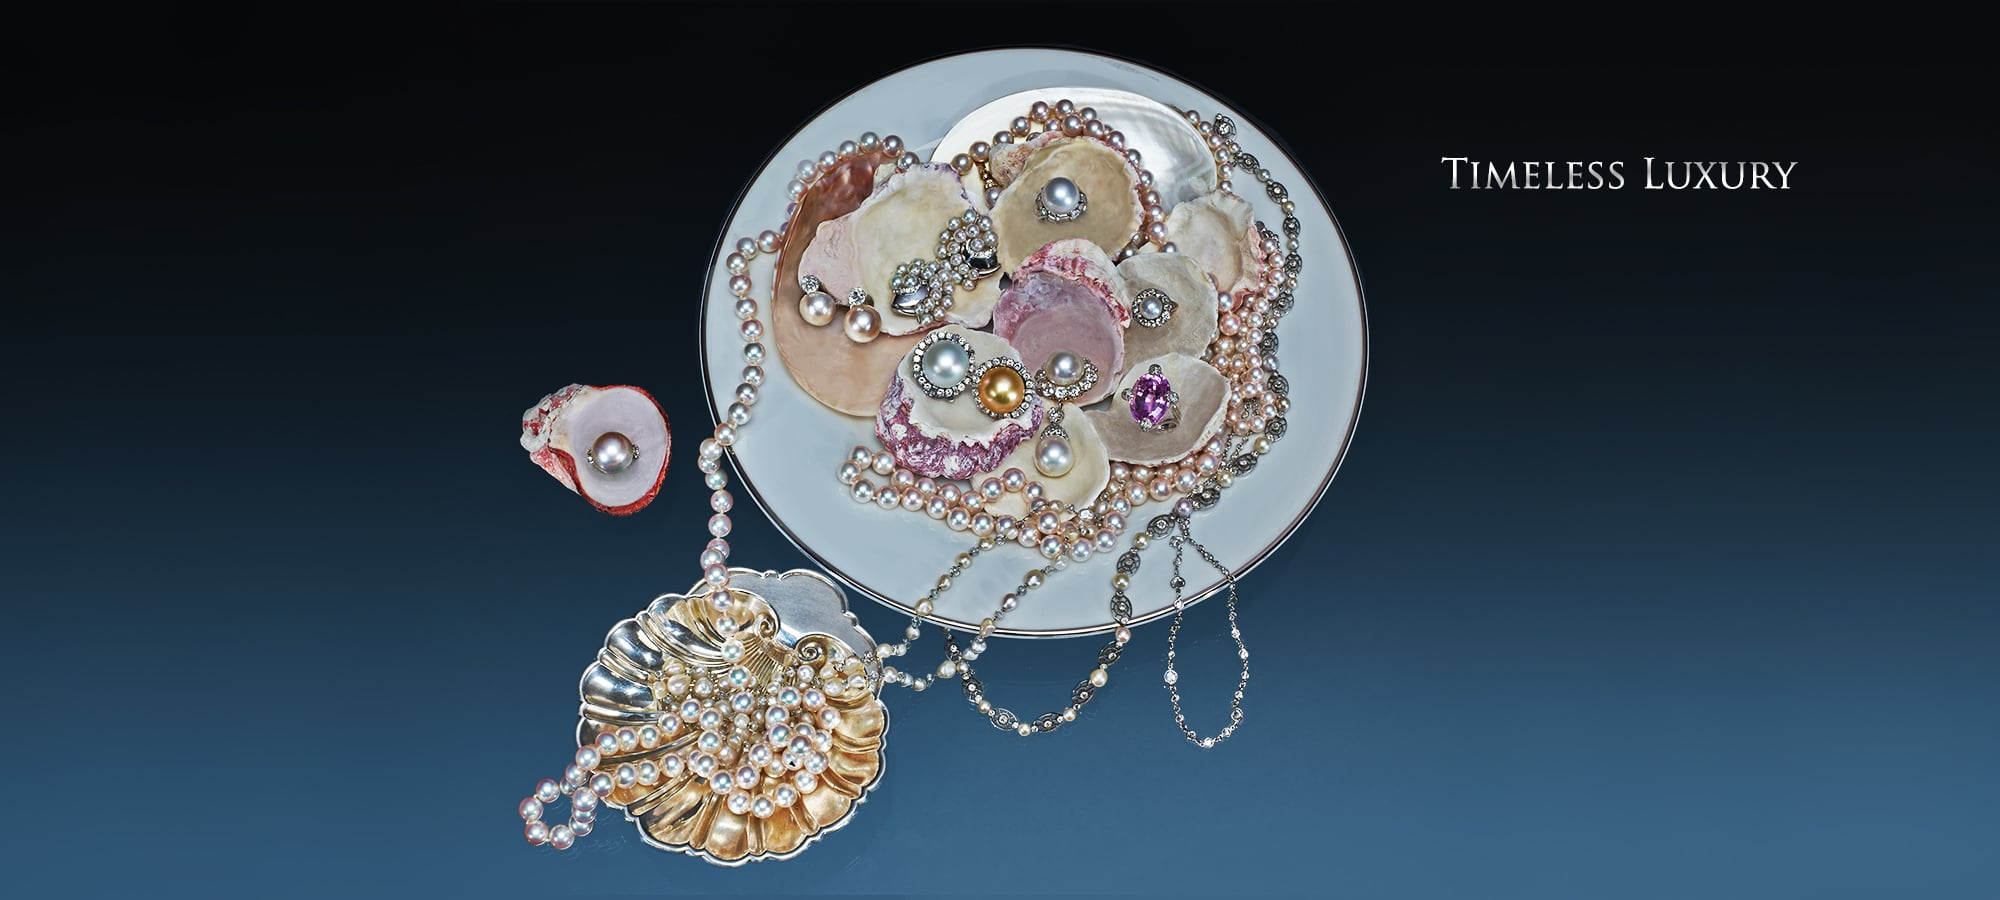 Cultured Pearl Necklace, Mabe Pearl and Diamond Ring by Suzanne Belperron, Paris, Mabe Pearl and Diamond Earrings by Suzanne Belperron, Paris, Pearl and Diamond Earrings in White Gold, South-Sea Pearl and Diamond Ring, Natural Pearl and Diamond Ring, Kunzite and Diamond Ring, South-Sea Pearl and Diamond Brooch, White and Golden South-Sea Pearl and Diamond Earrings, Natural Pearl and Diamond Bead Necklace, Antique Natural Pearl and Diamond Necklace, Rose-Cut Diamond Chain